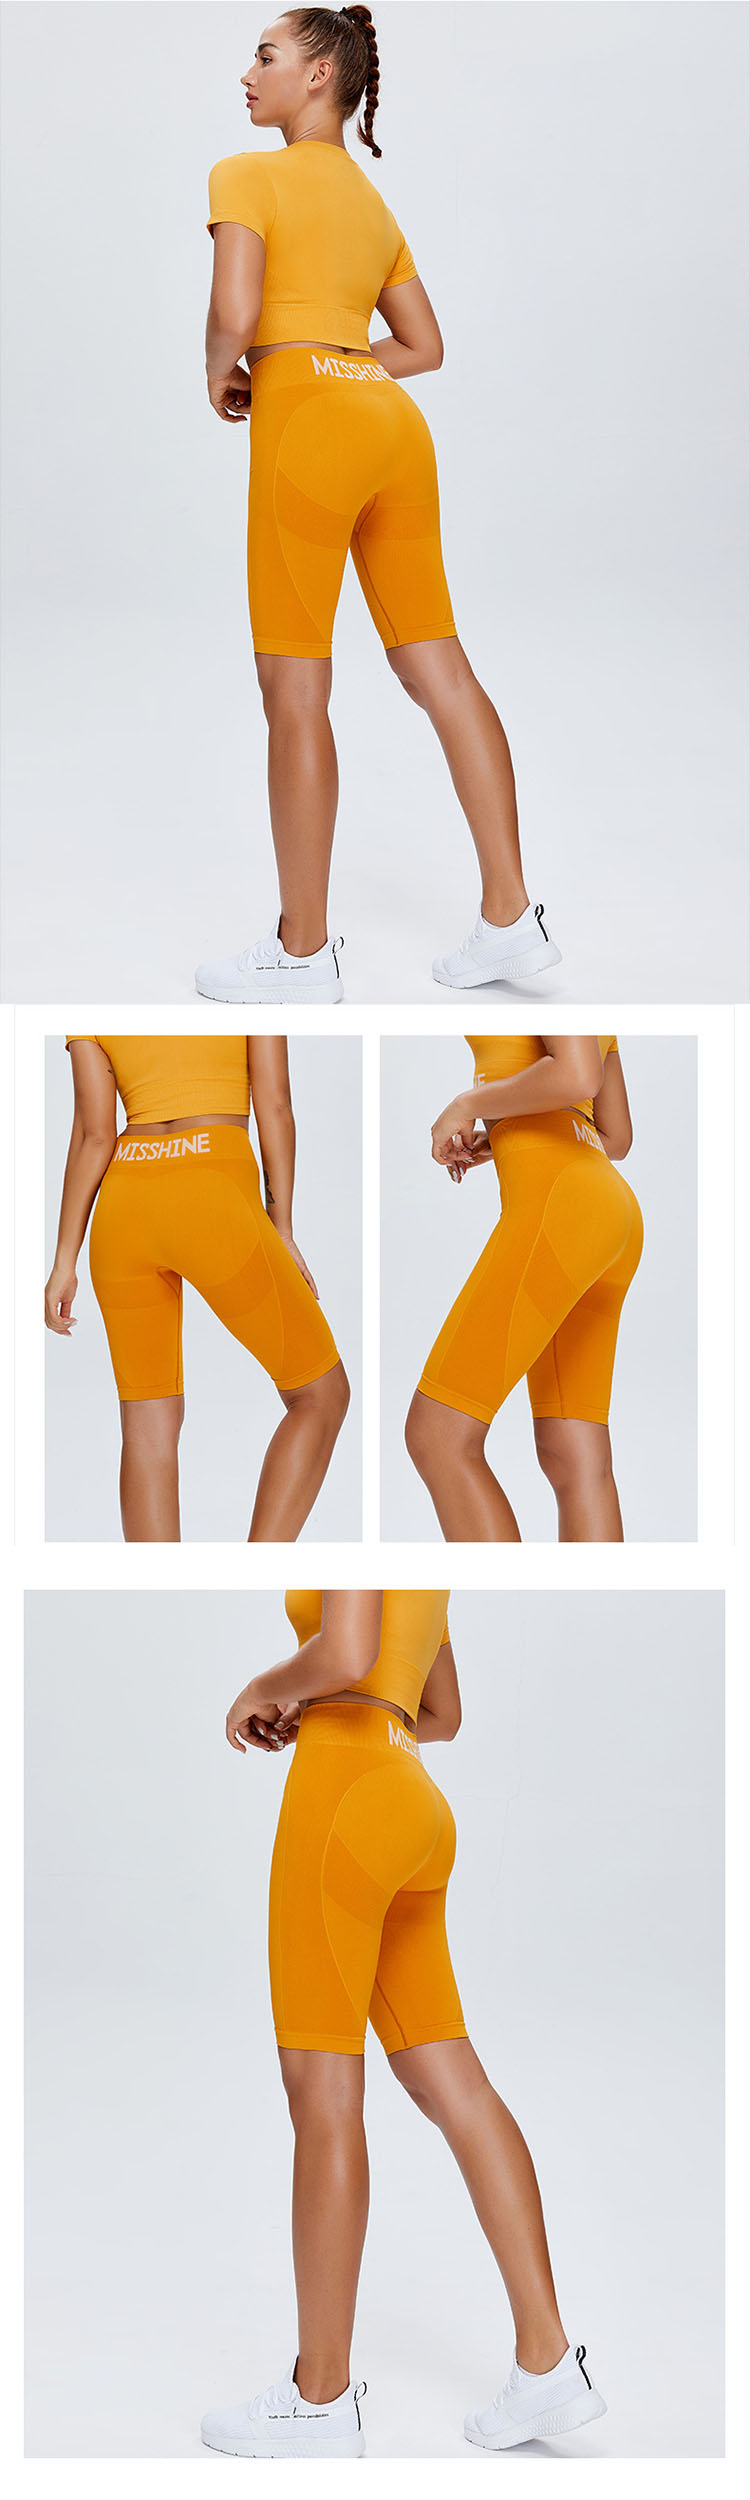 Wrap around the waist and gather the abdomen. It shows a small waist and brings you a comfortable wearing experience.